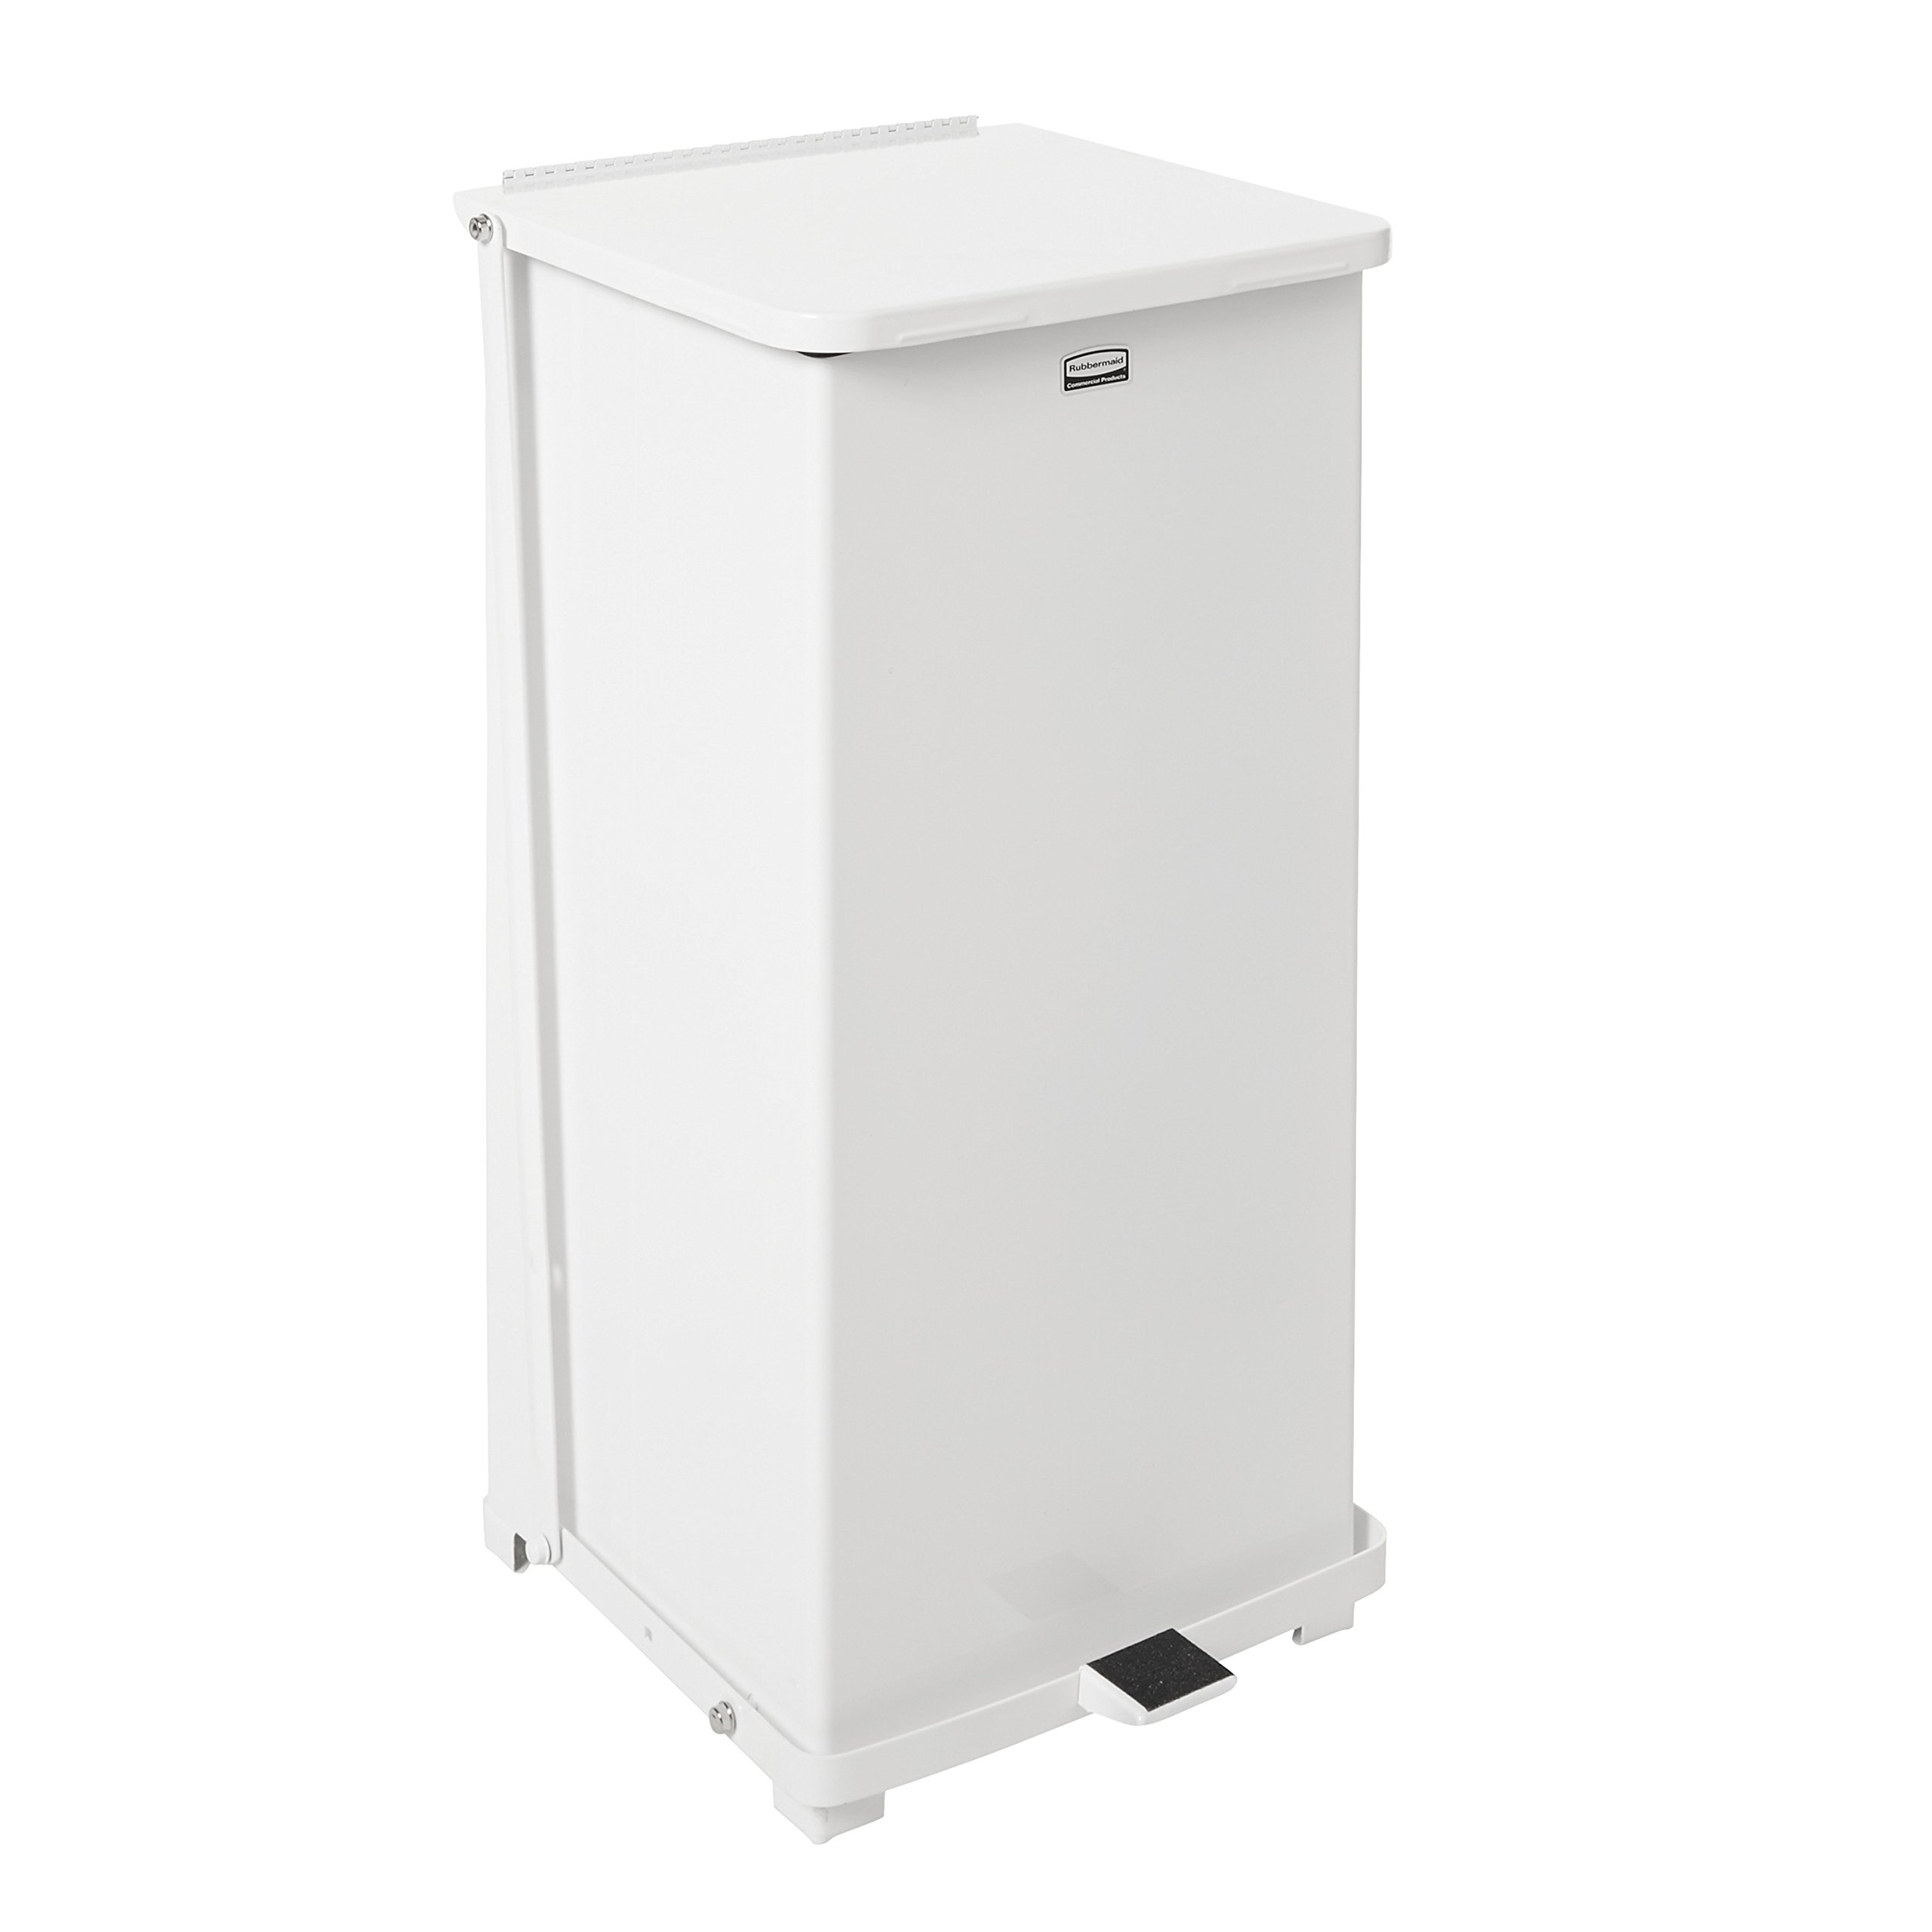 Rubbermaid Commercial Defenders Step-On Trash Can, 24 Gallon, White, FGST24EPLWH